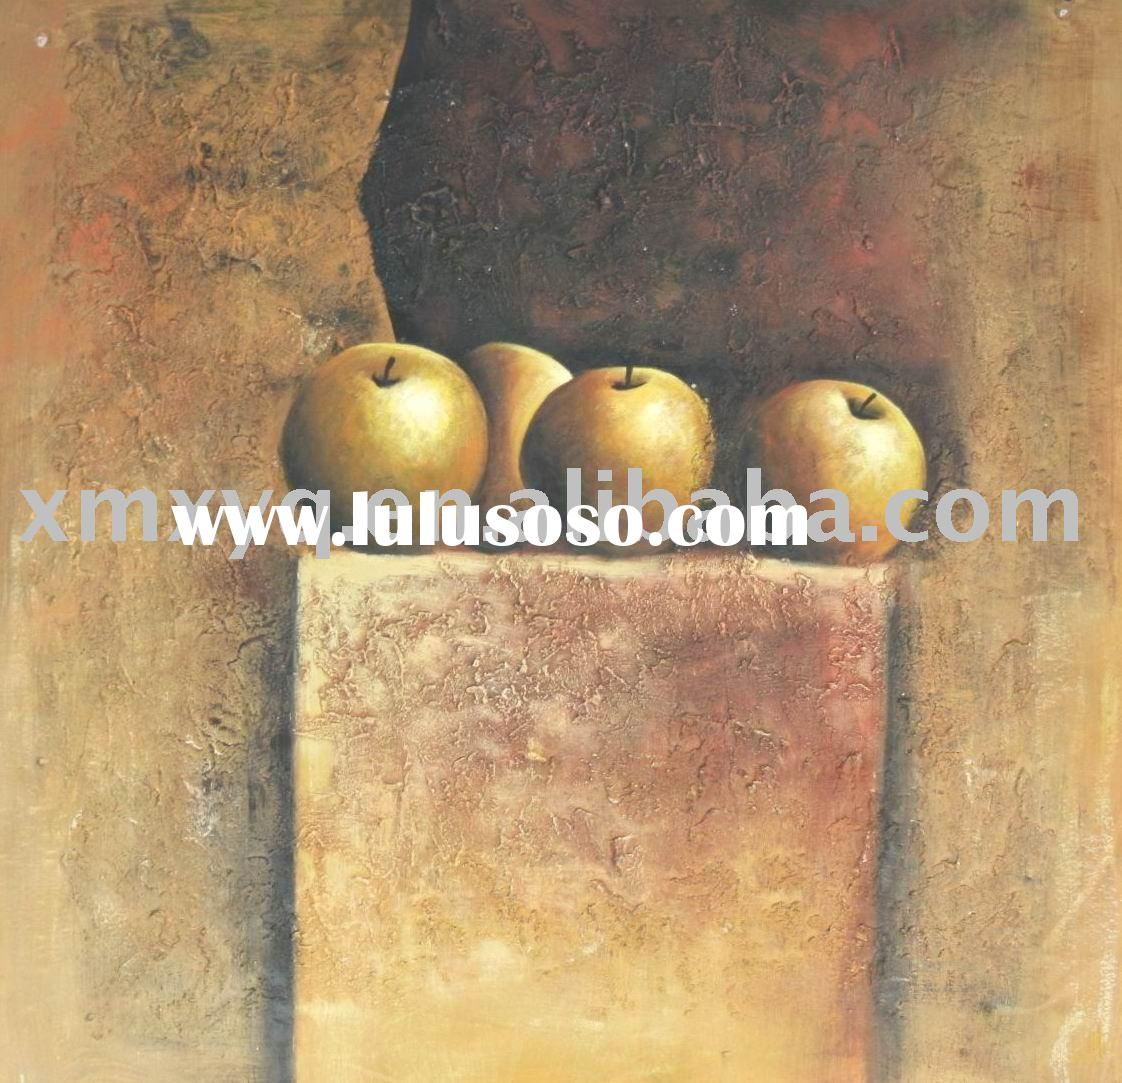 Modern Abstract Metallic Texture Art Oil Painting on Canvas Fruits